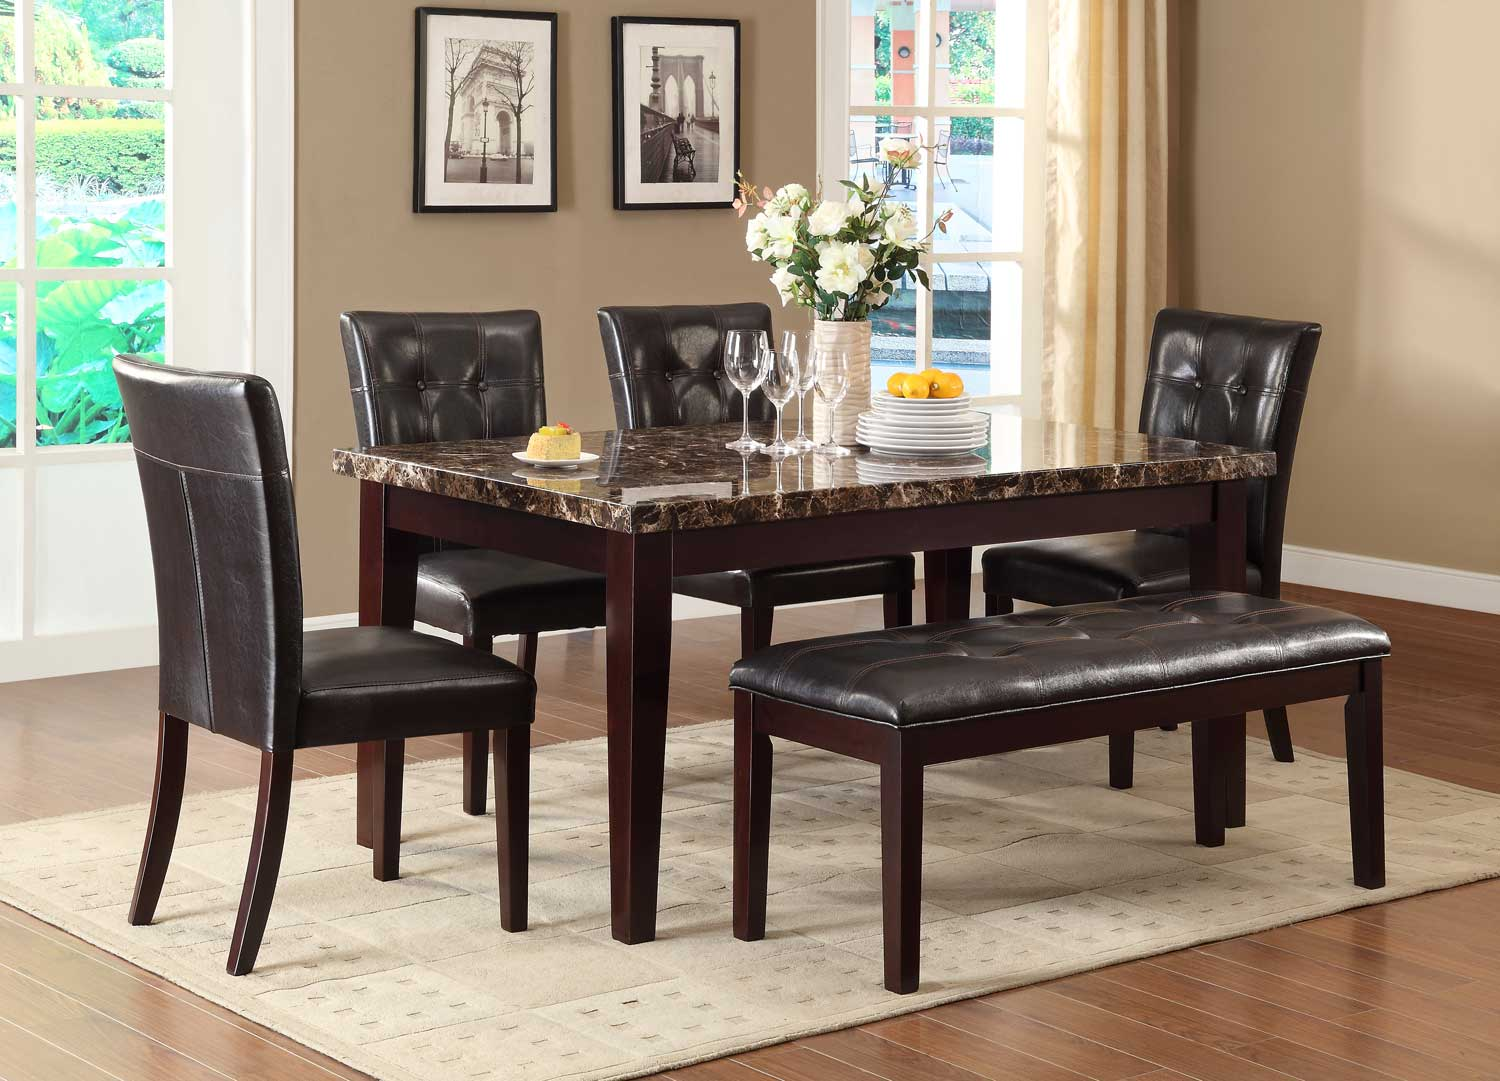 Homelegance Teague Faux Marble Dining Set Espresso D2544 64 At